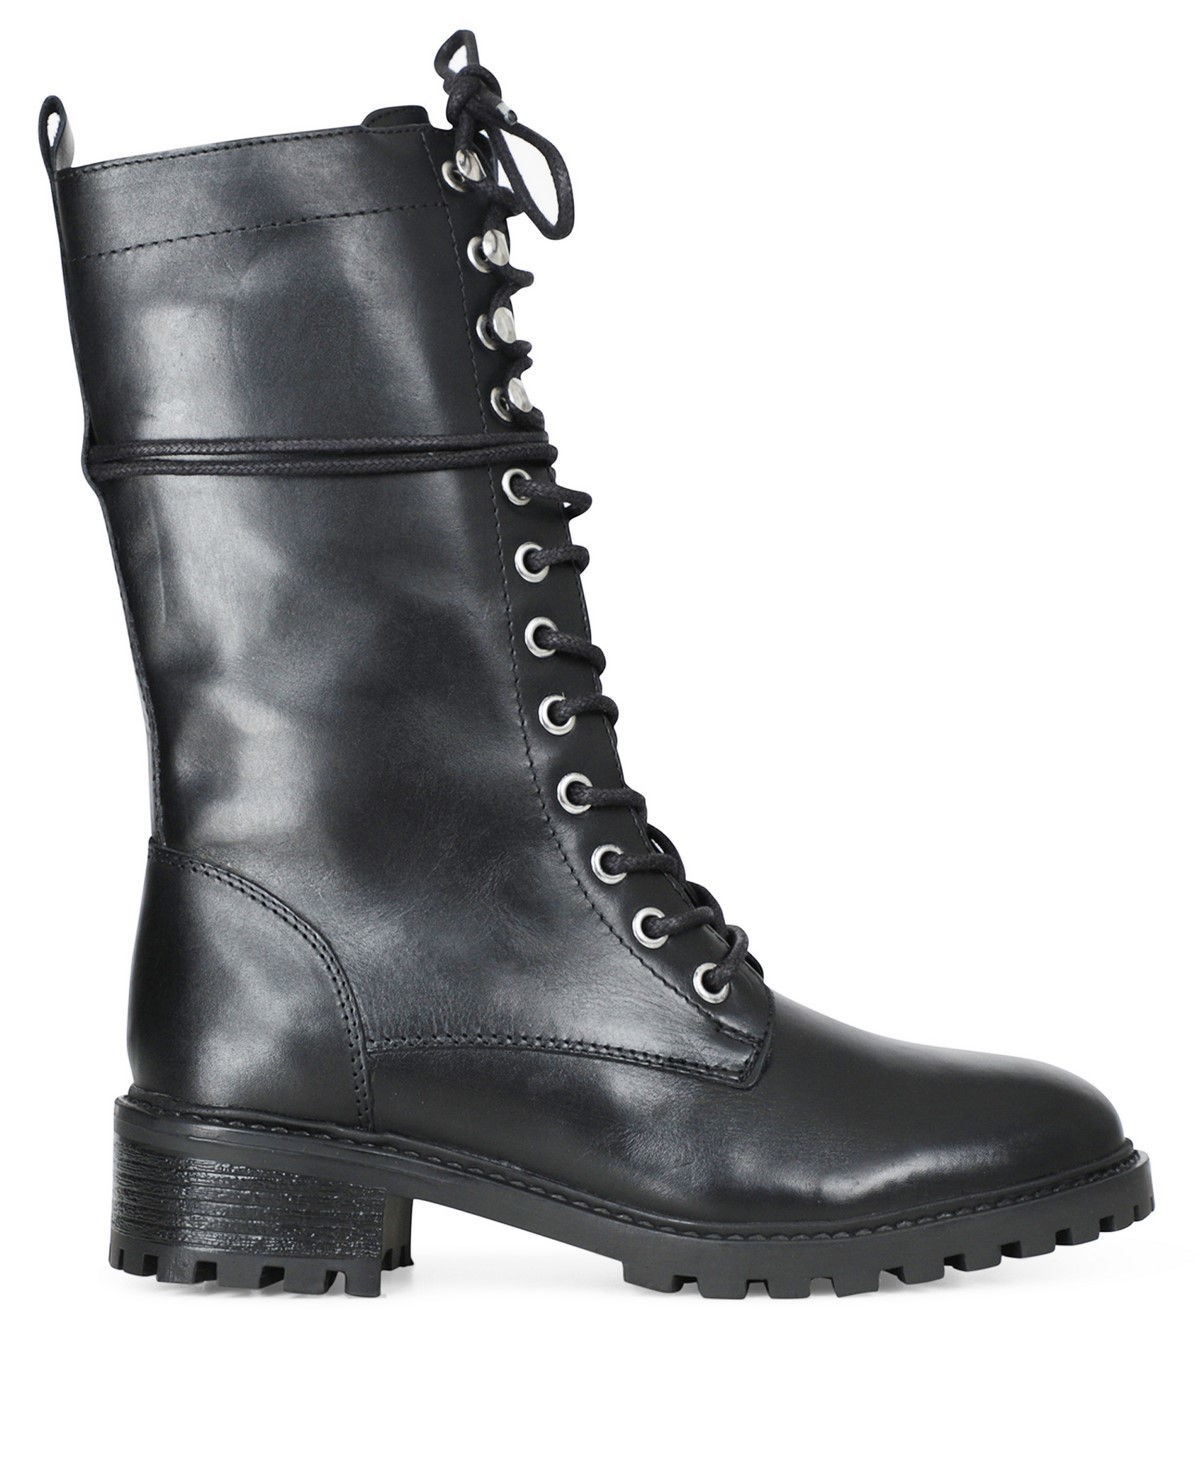 PS Poelman Veterboot Zwart LPFENIX-34